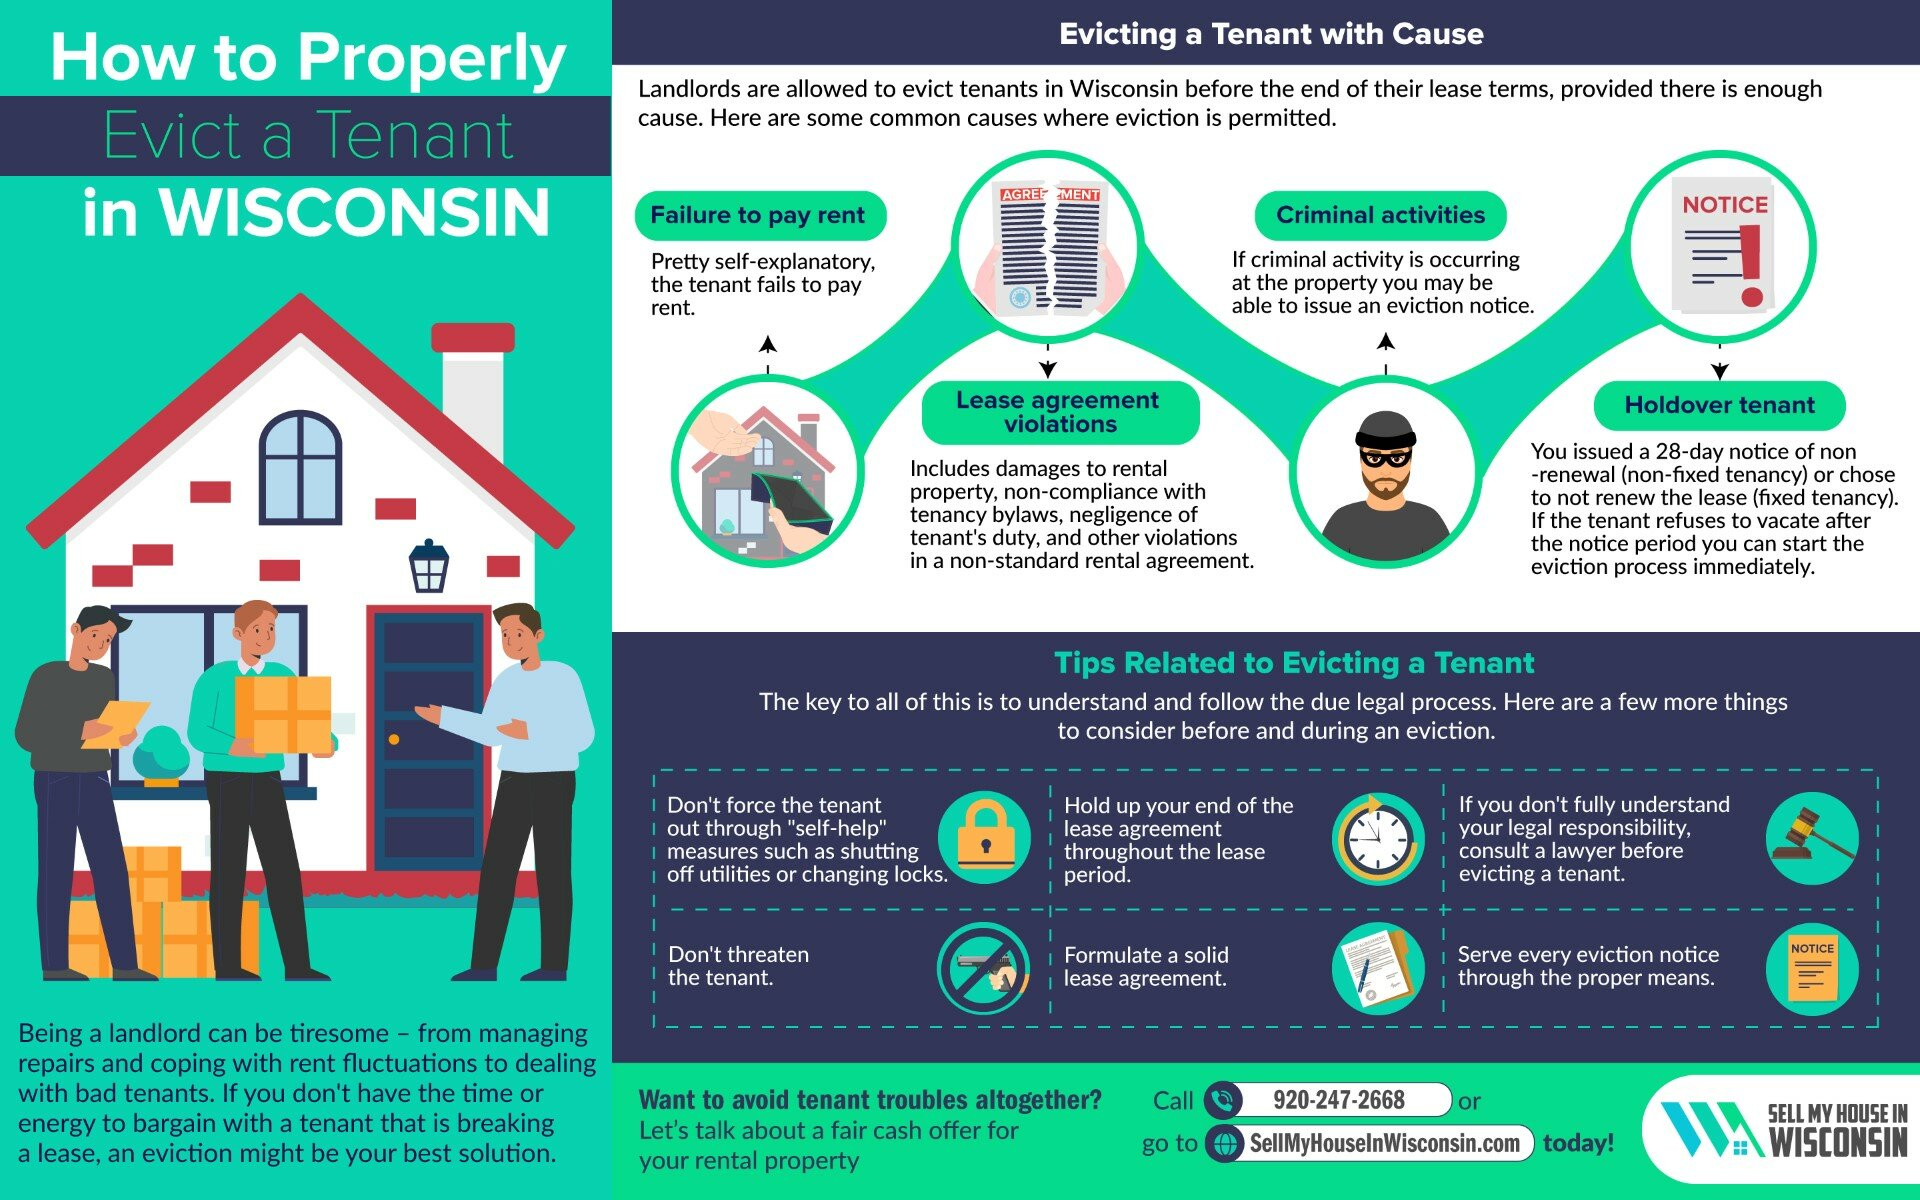 How to evict a tenant in Wisconsin